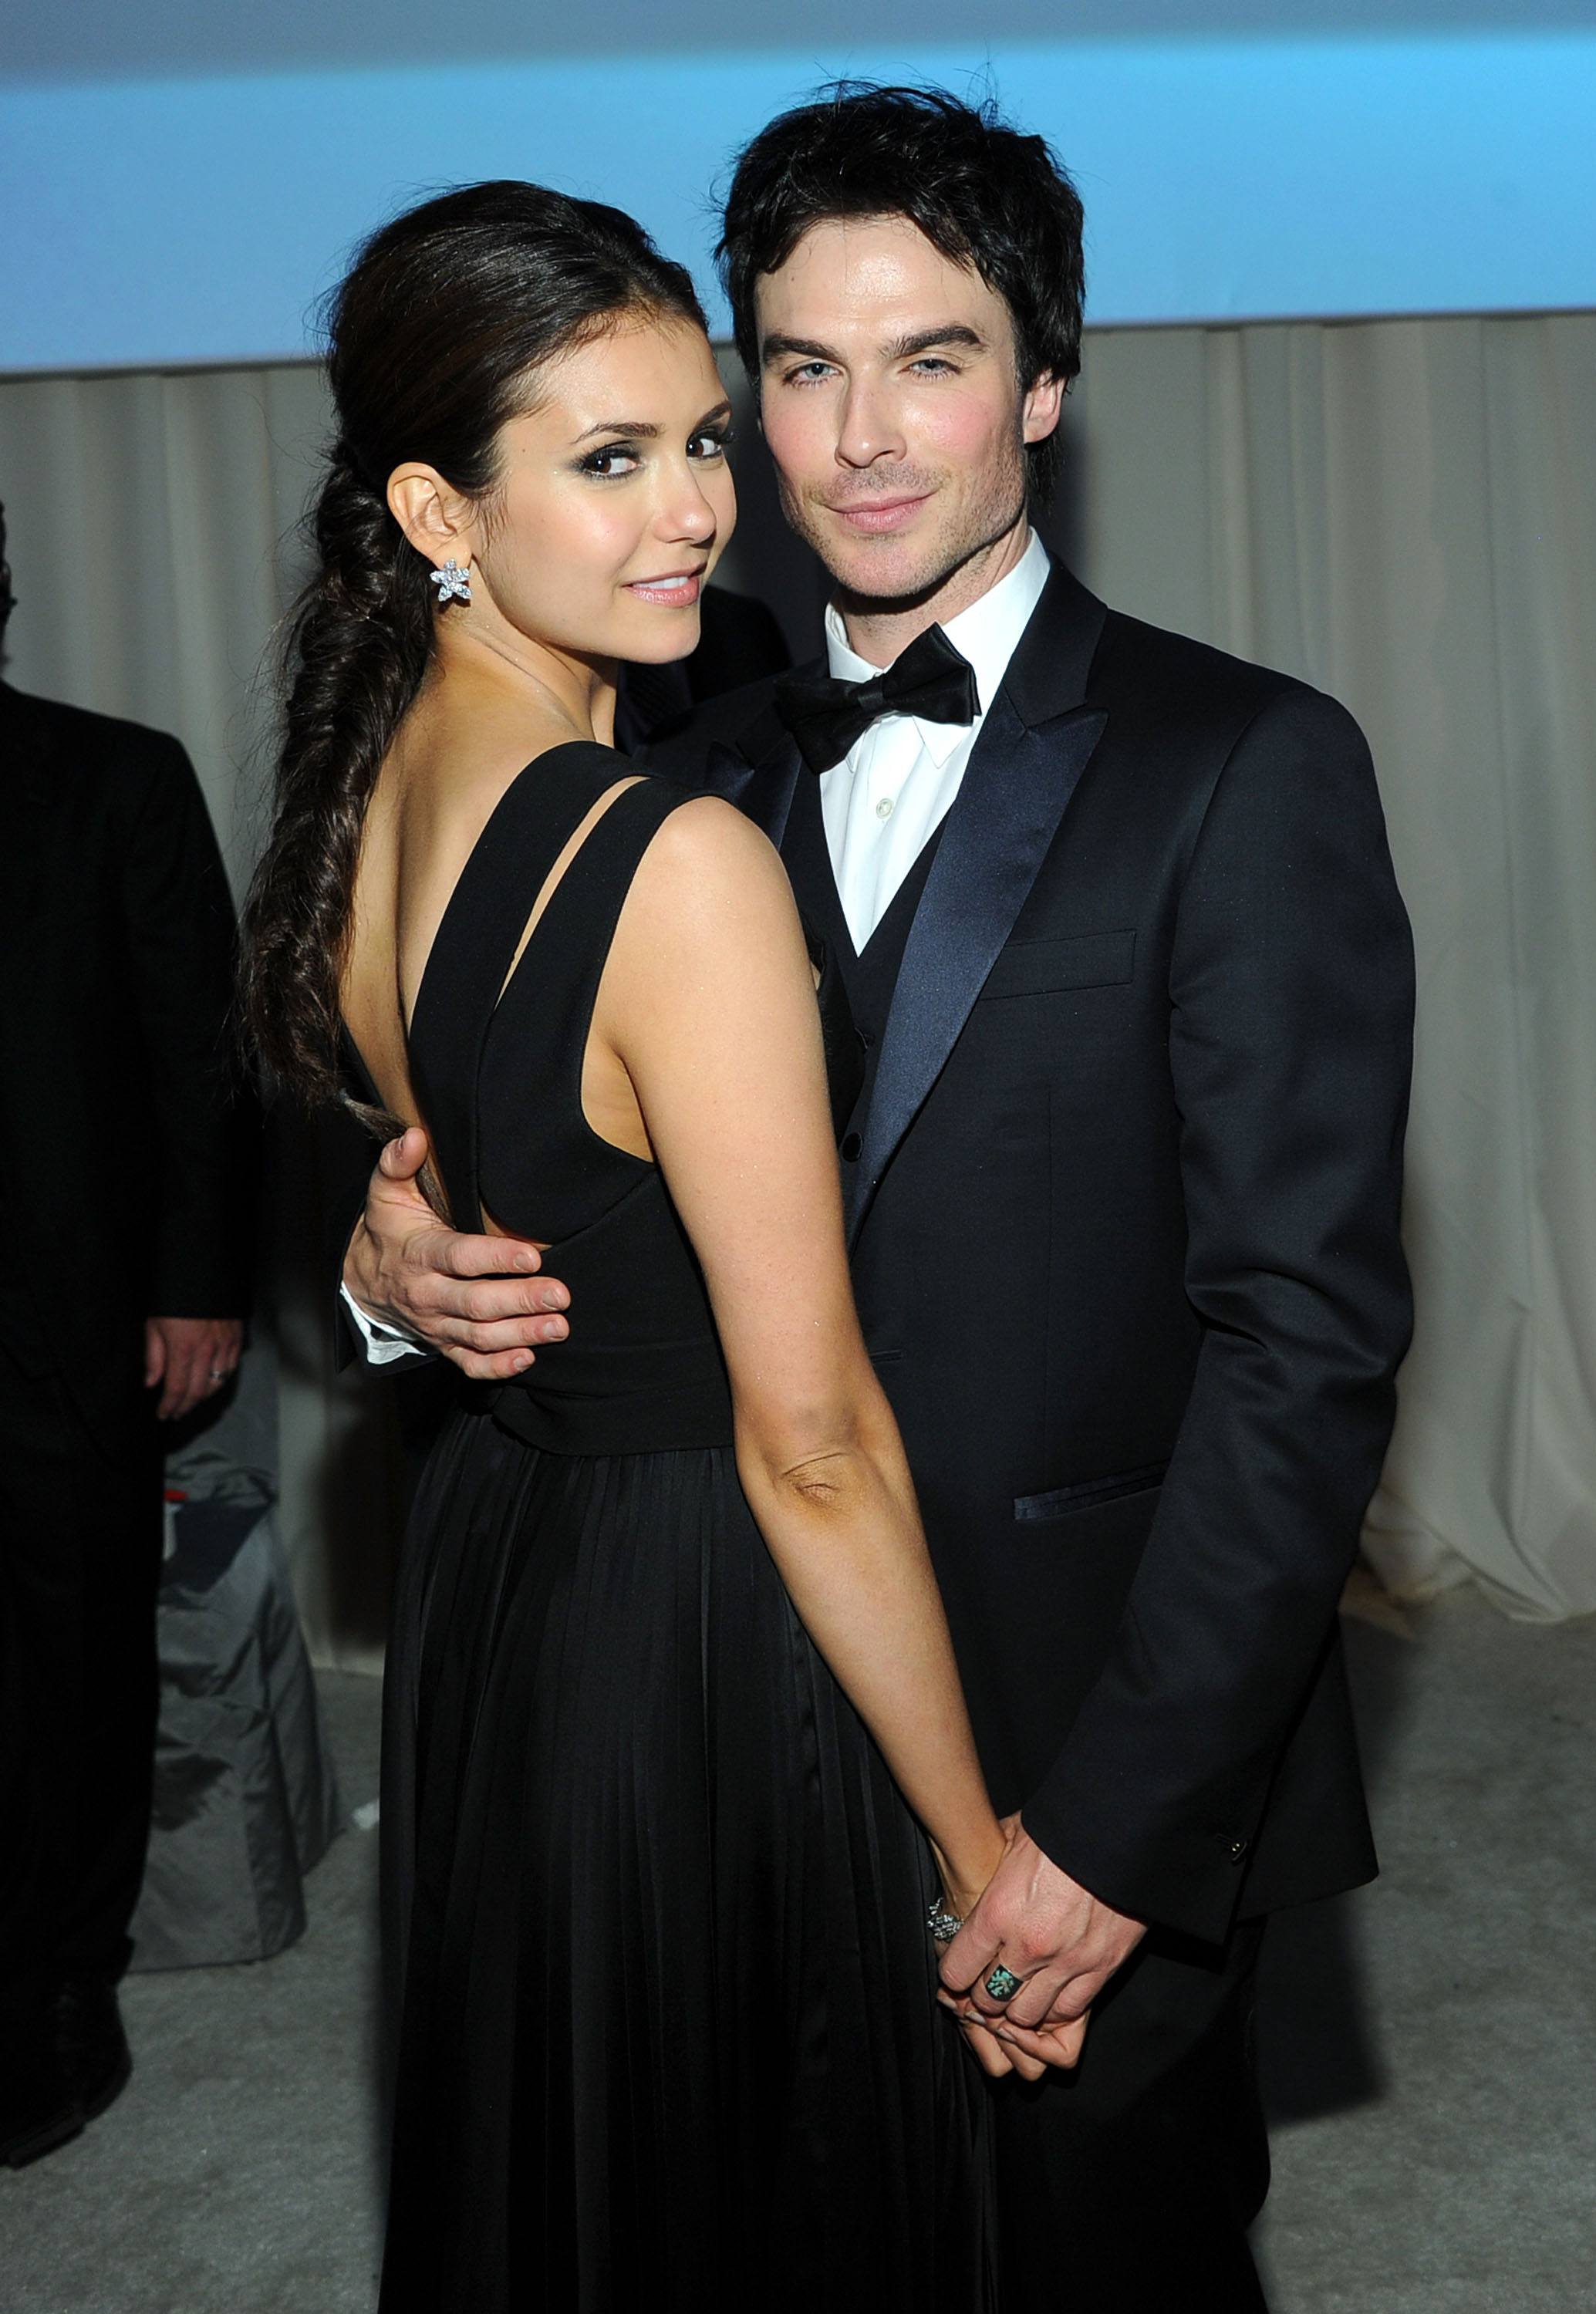 Did nina dobrev attend ian somerhalder nikki reeds wedding larry busaccagetty images entertainmentgetty images junglespirit Images